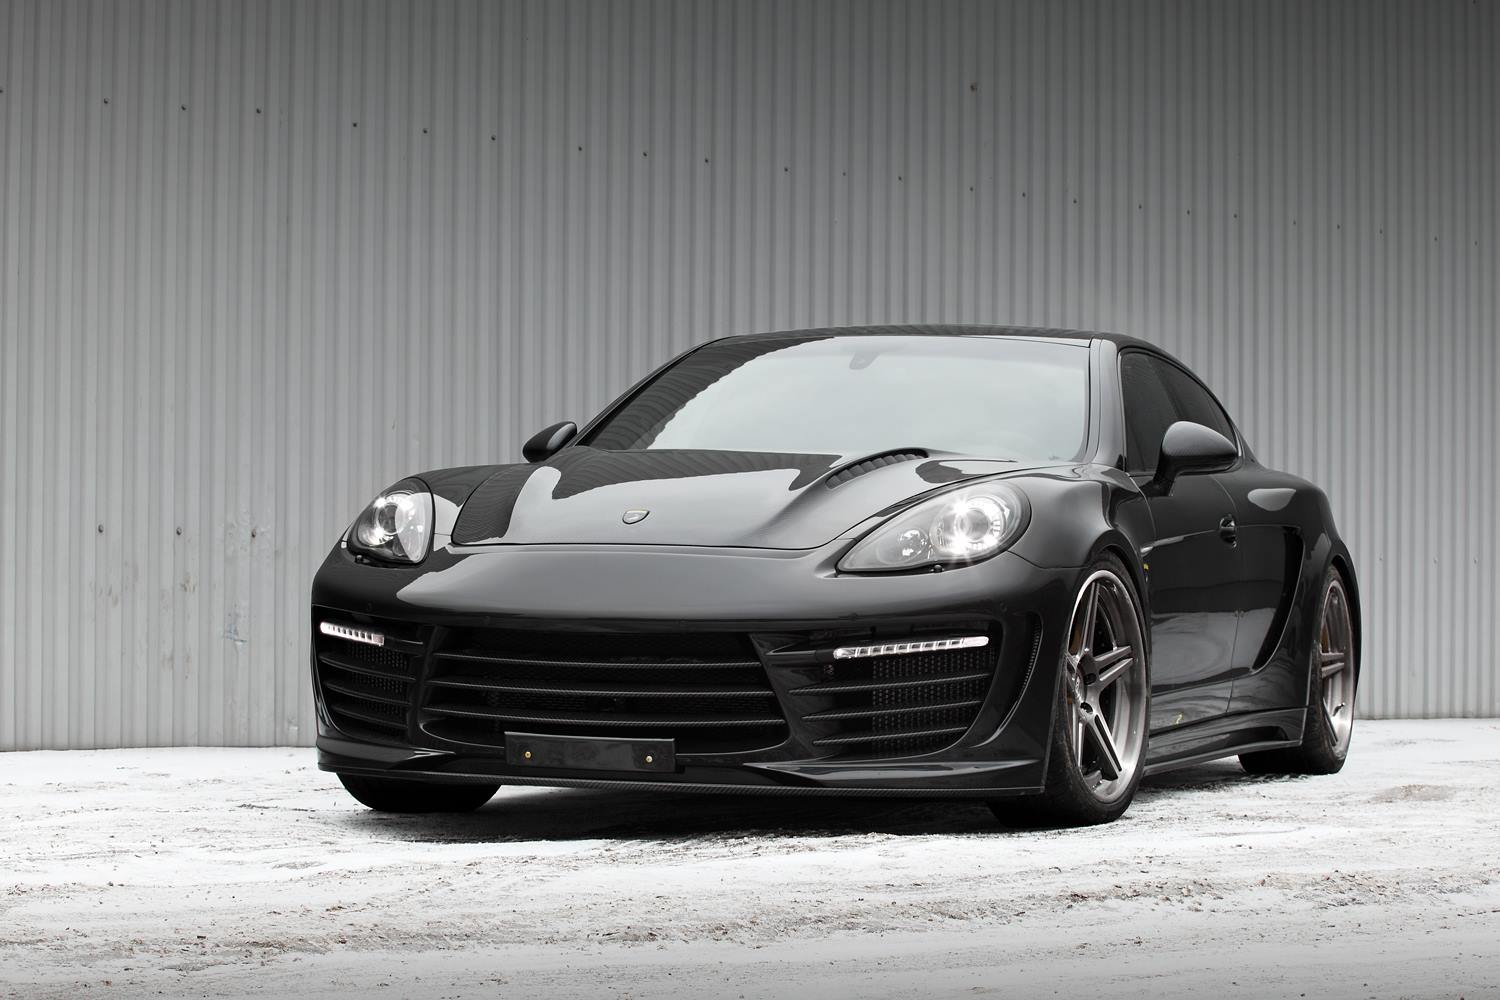 2014 Porsche Panamera by TopCar Tuning with crocodile leather and gold